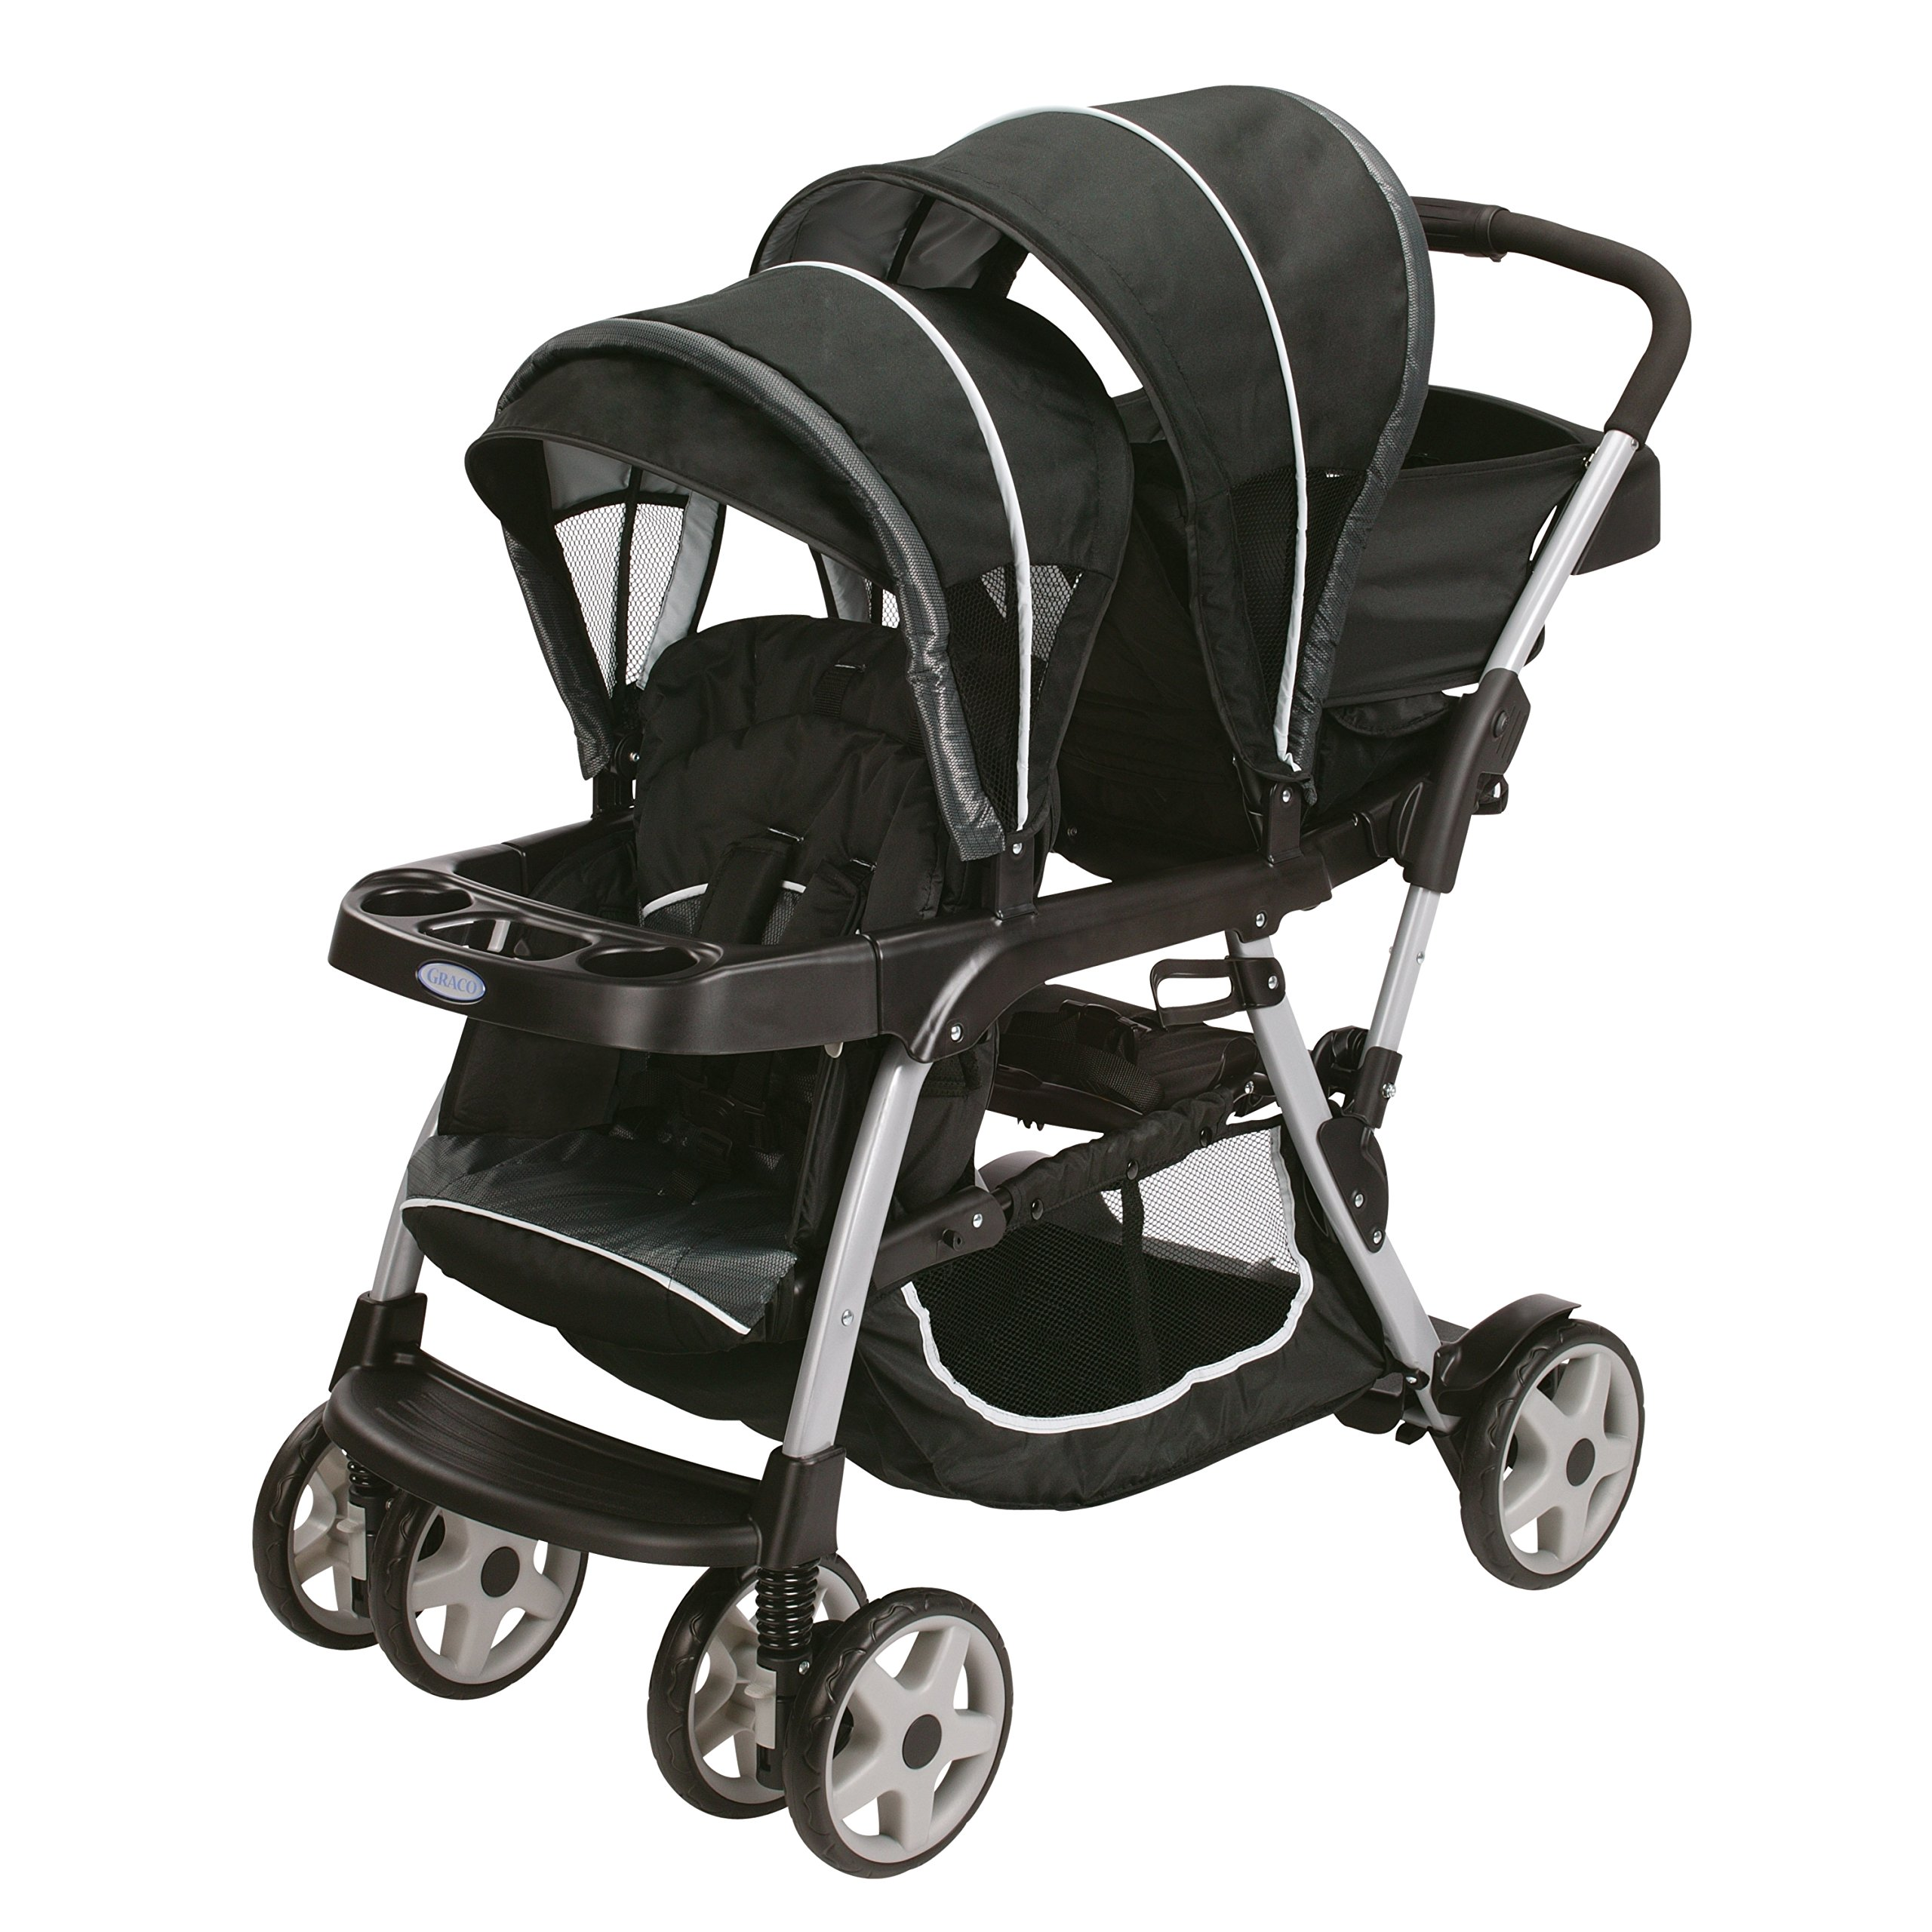 Graco Ready2grow Click Connect Double Stroller, Gotham (Discontinued by Manufacturer) by Graco